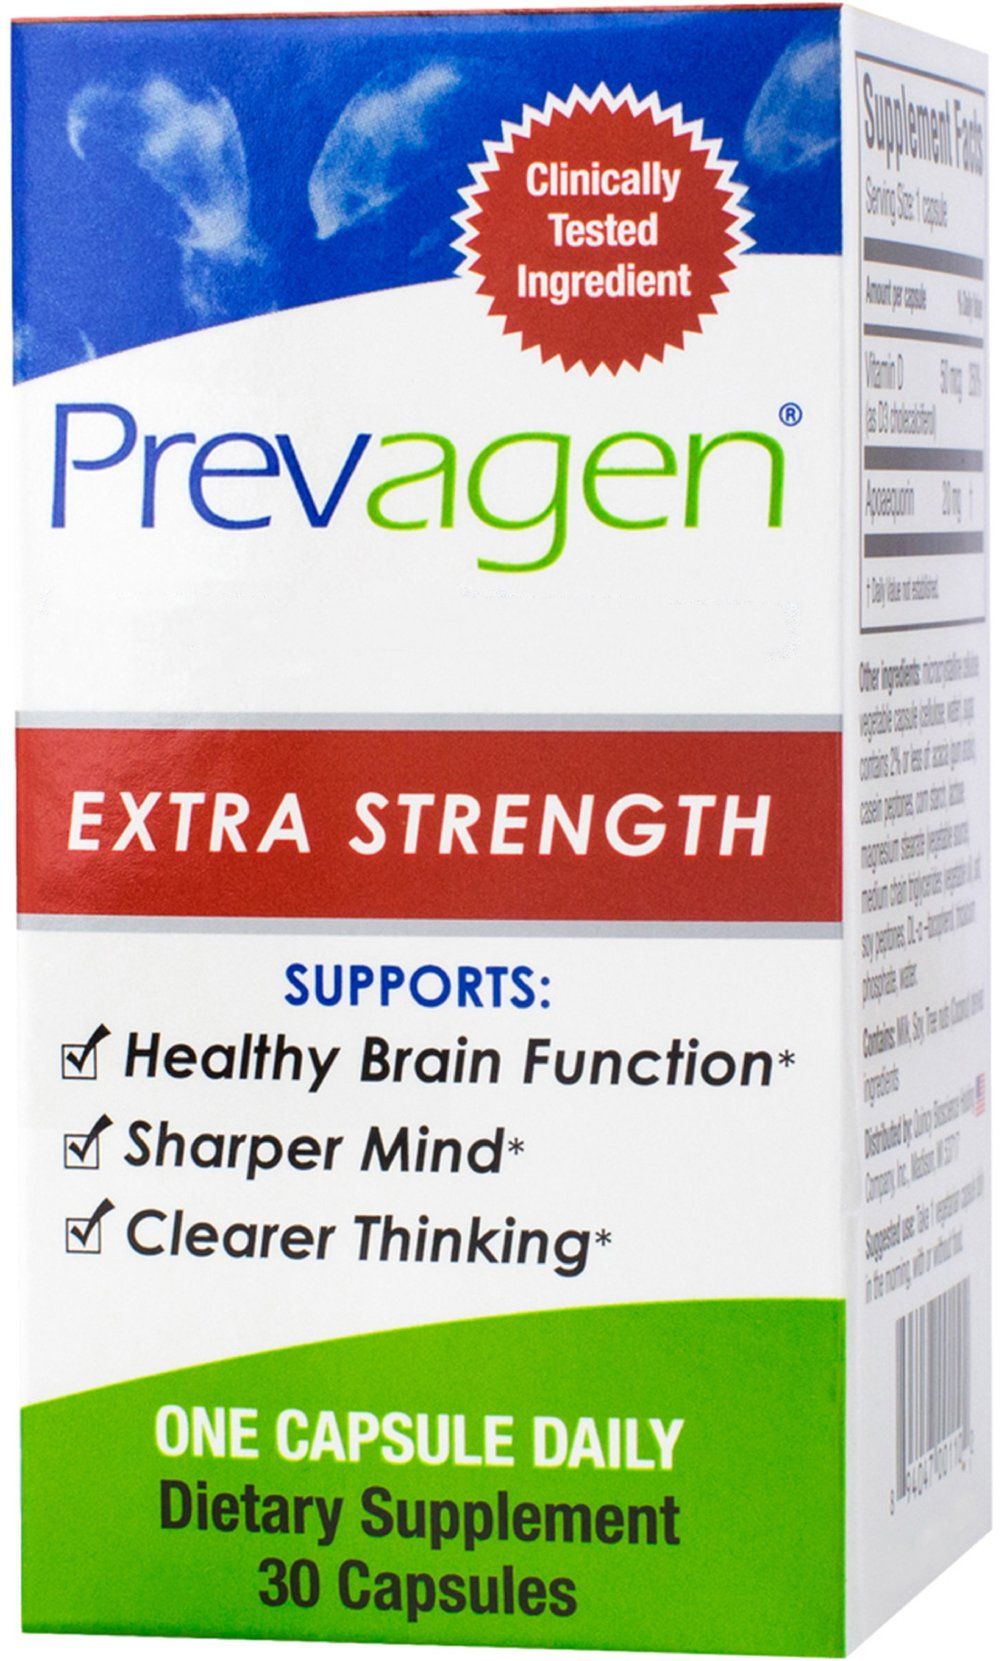 Prevagen® Extra Strength <p></p><p><strong>From the Manufacturer's Label:</strong><br /></p><p>Supports: </p><ul><li>Healthy Brain Function**</li><li>Sharper Mind**</li><li>Clearer Thinking**<br /></li></ul><p>Prevagen Extra Strength® is designed to have twice the apoaequorin as regular strength Prevagen.<br /><br />Prevagen Extra Strength contains apoaequor